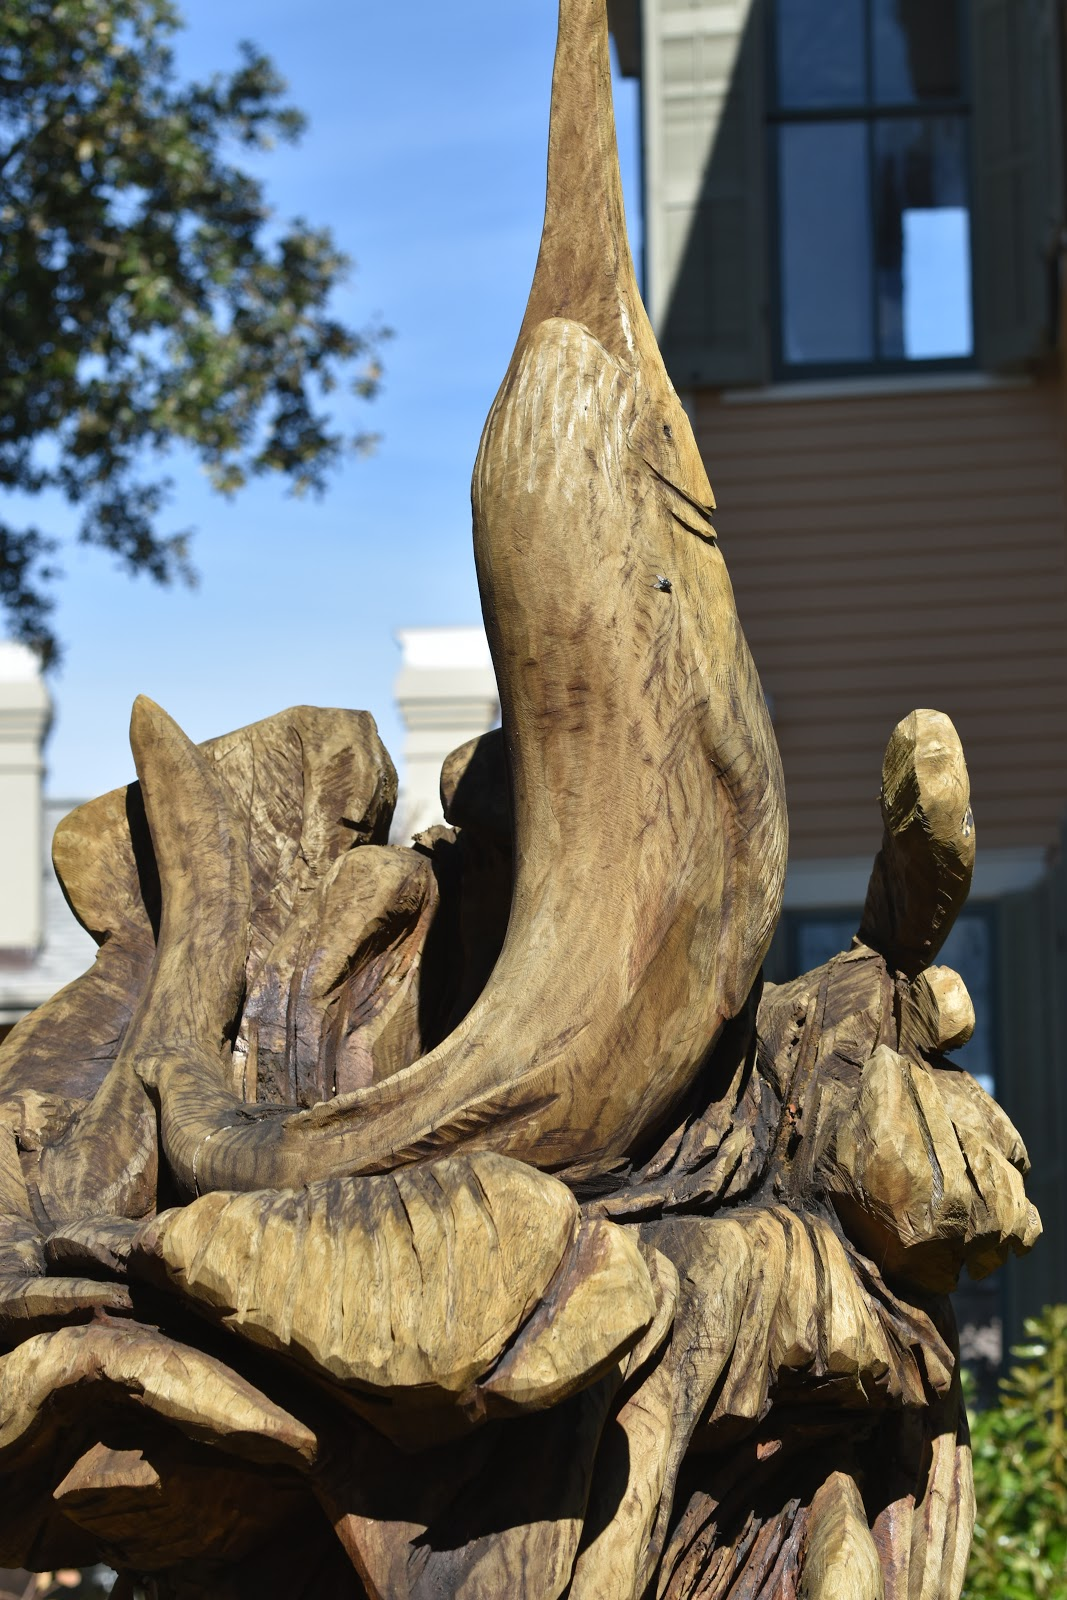 Good times rollin tree sculpture tour